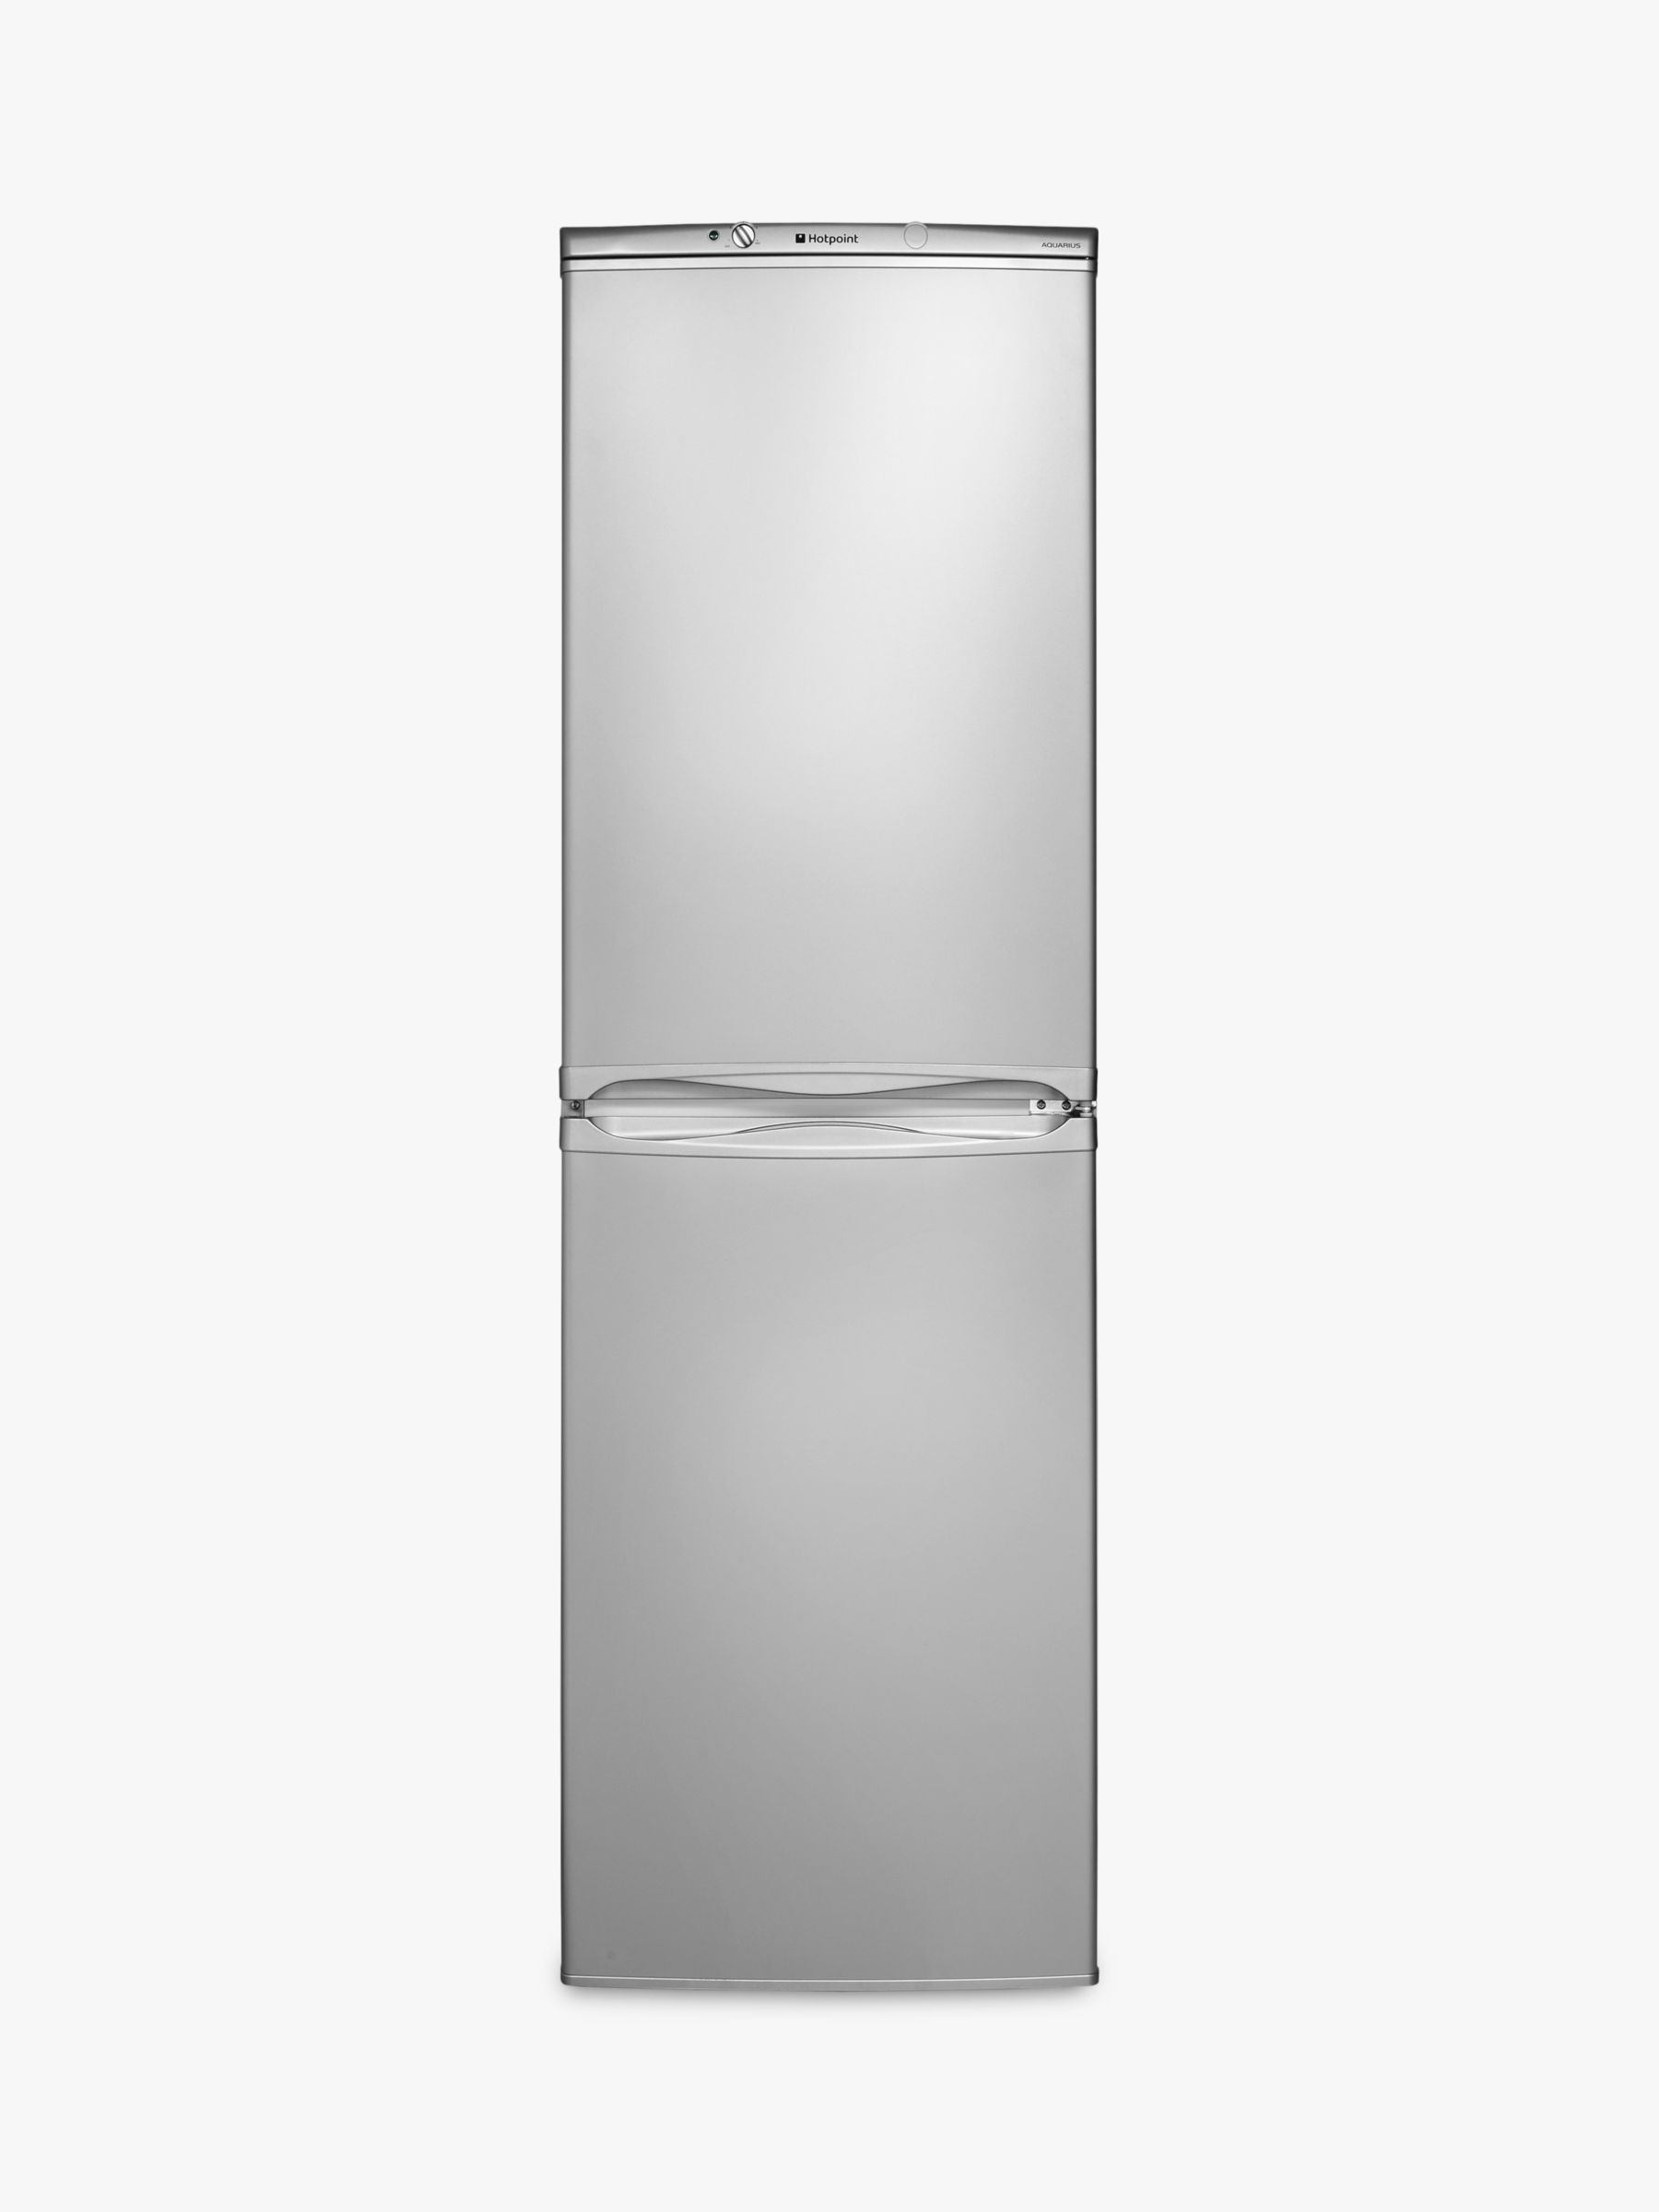 Hotpoint Hotpoint HBNF5517SUK Freestanding Fridge Freezer, A+ Energy Rating, 54.5cm Wide, Silver